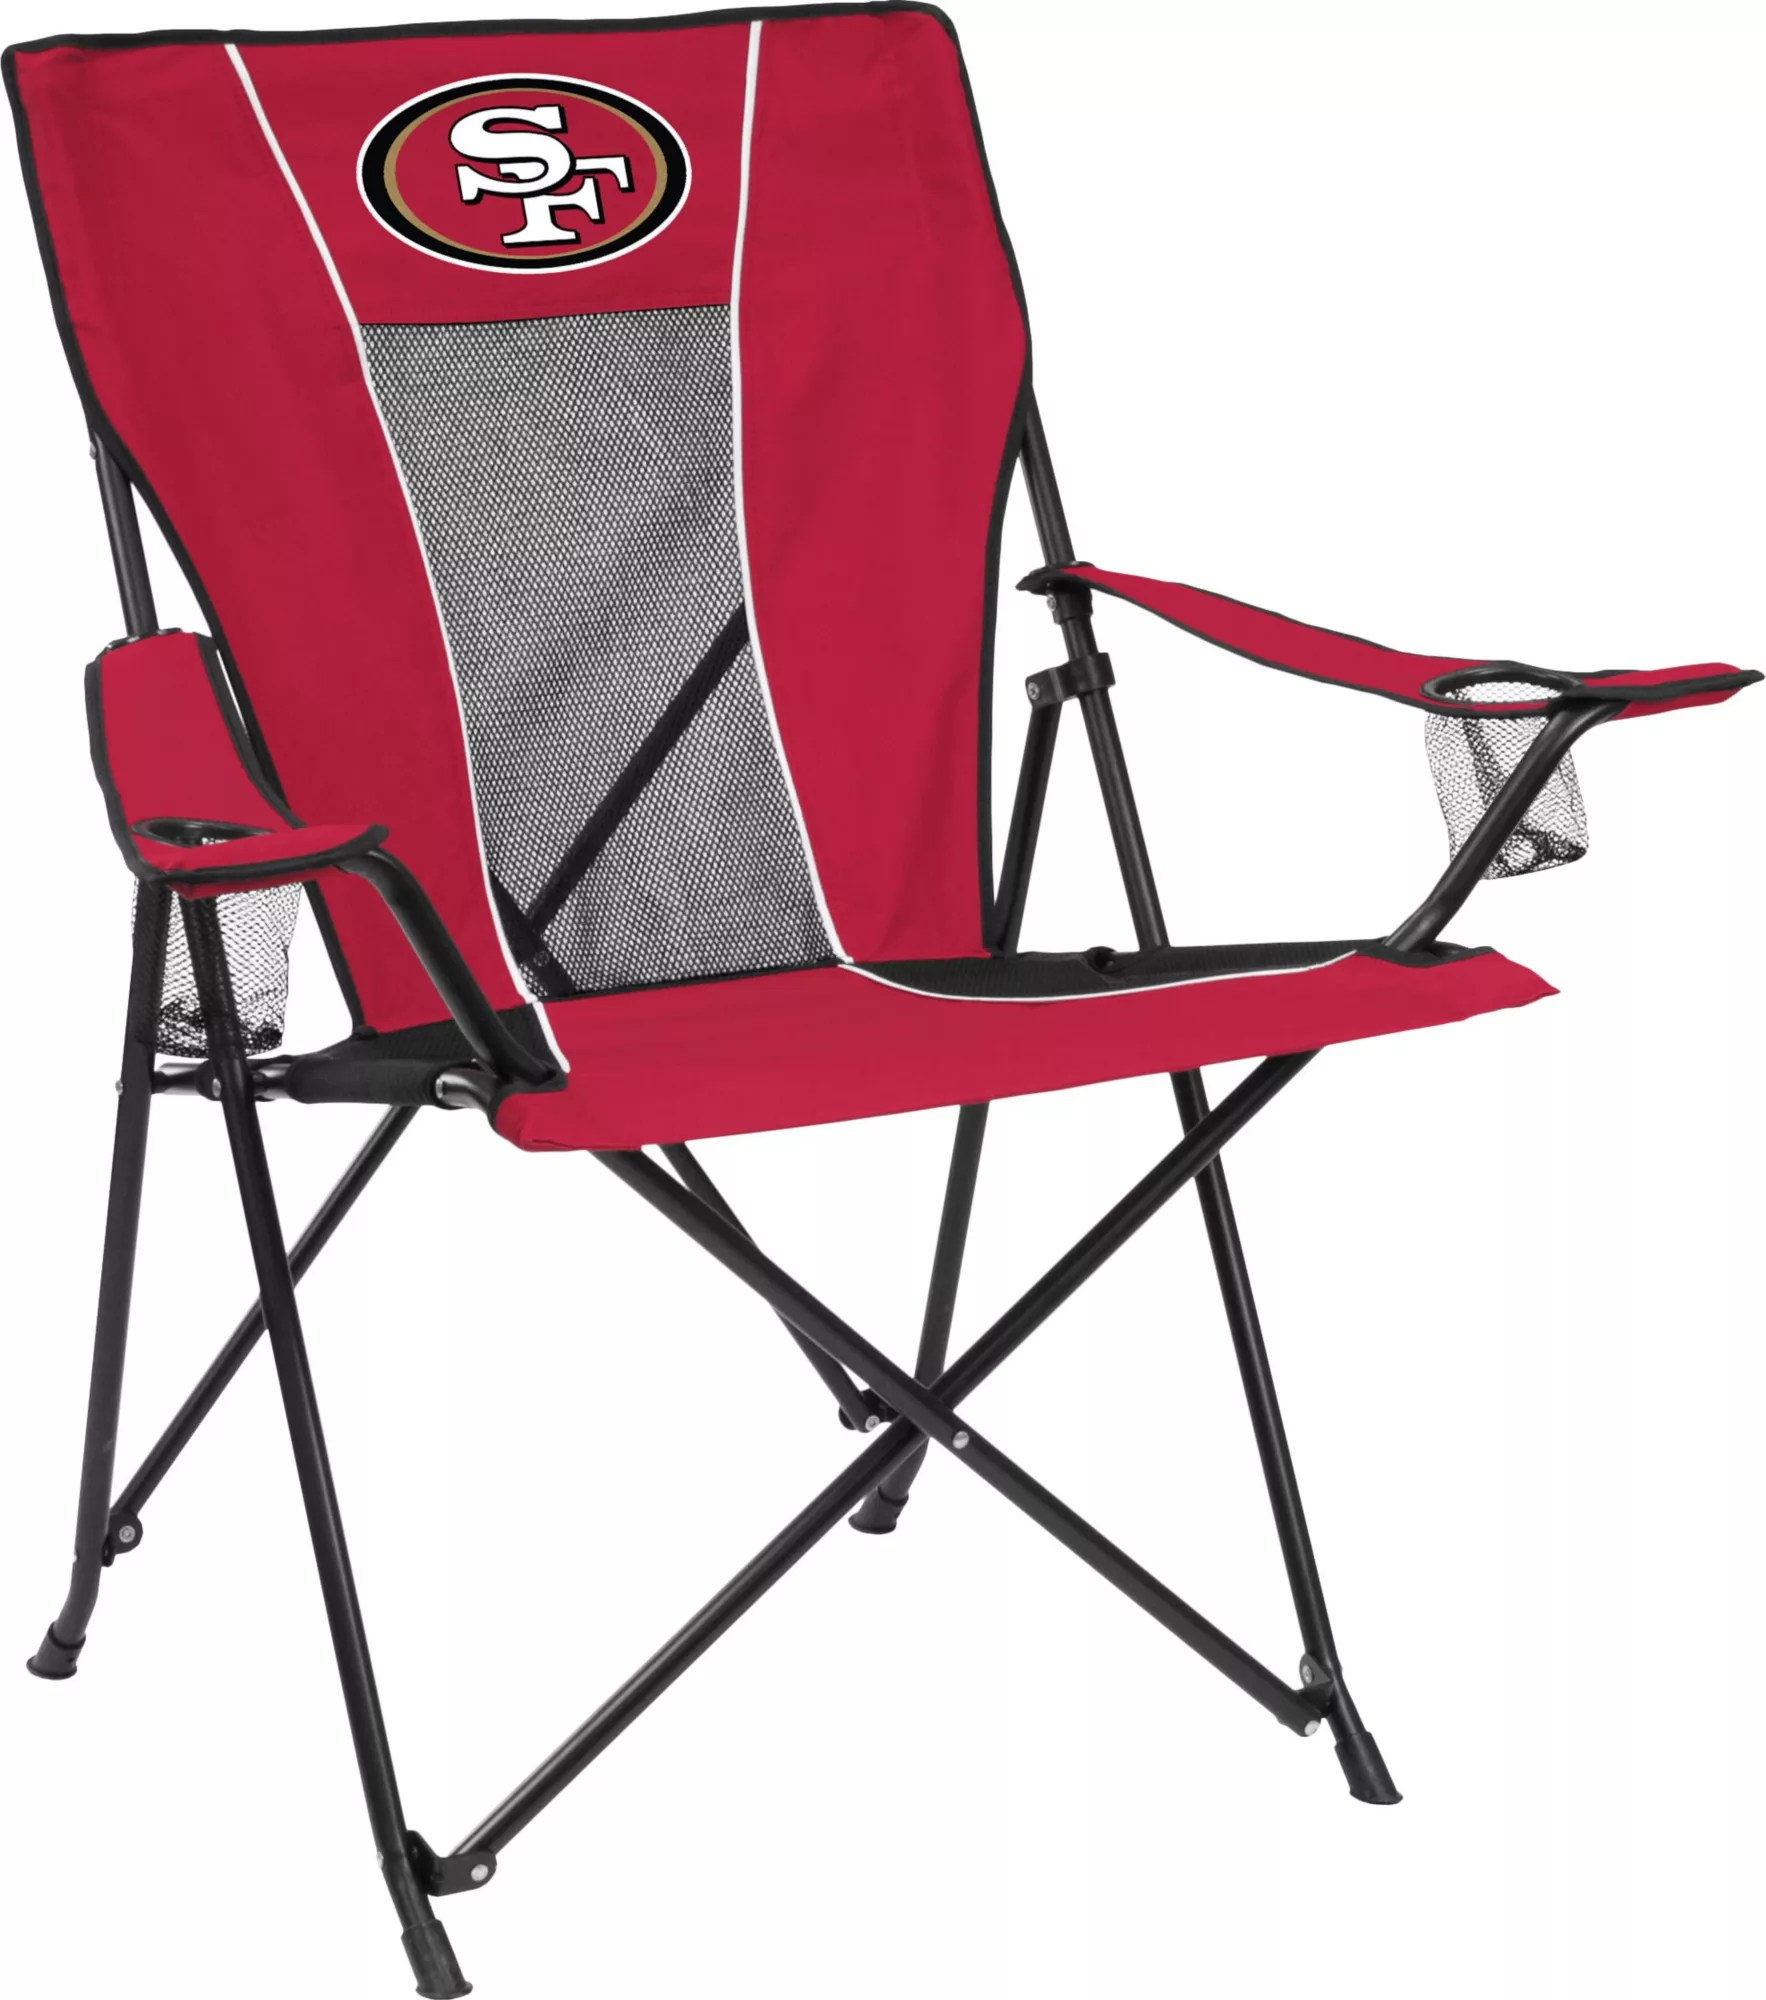 49ers camping chair swivel nursery san francisco game time dick s sporting